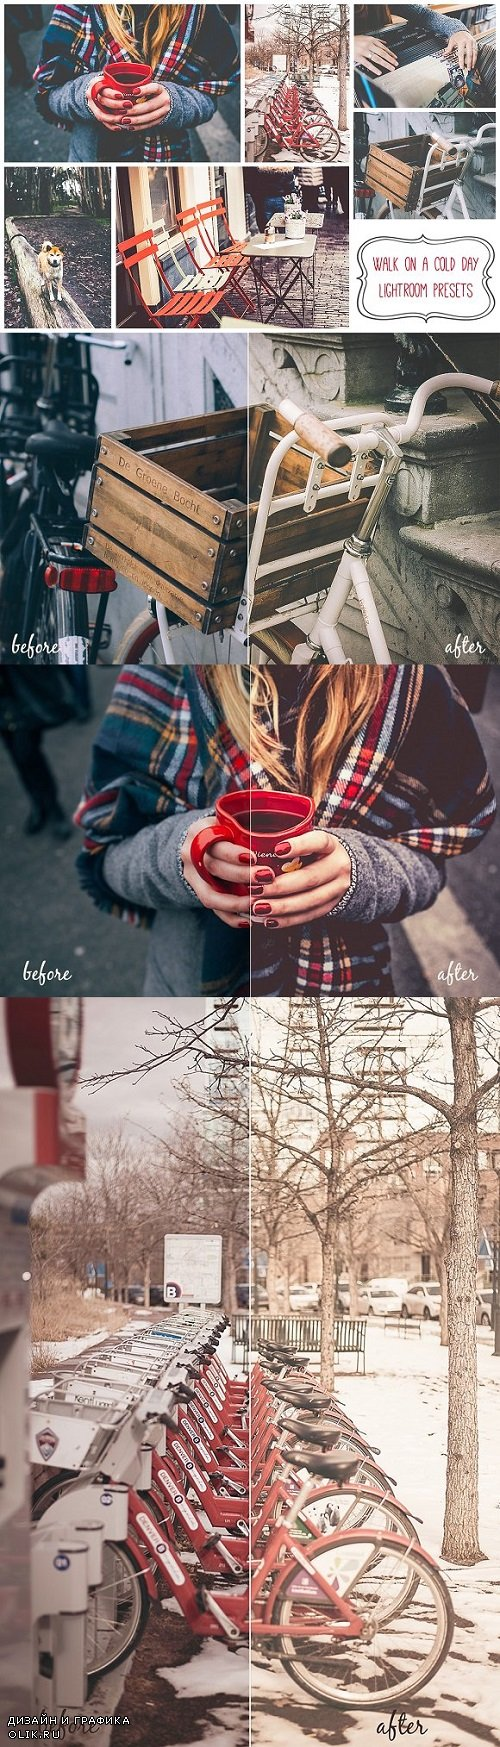 Walk on a cold day Lightroom Presets - 1407536